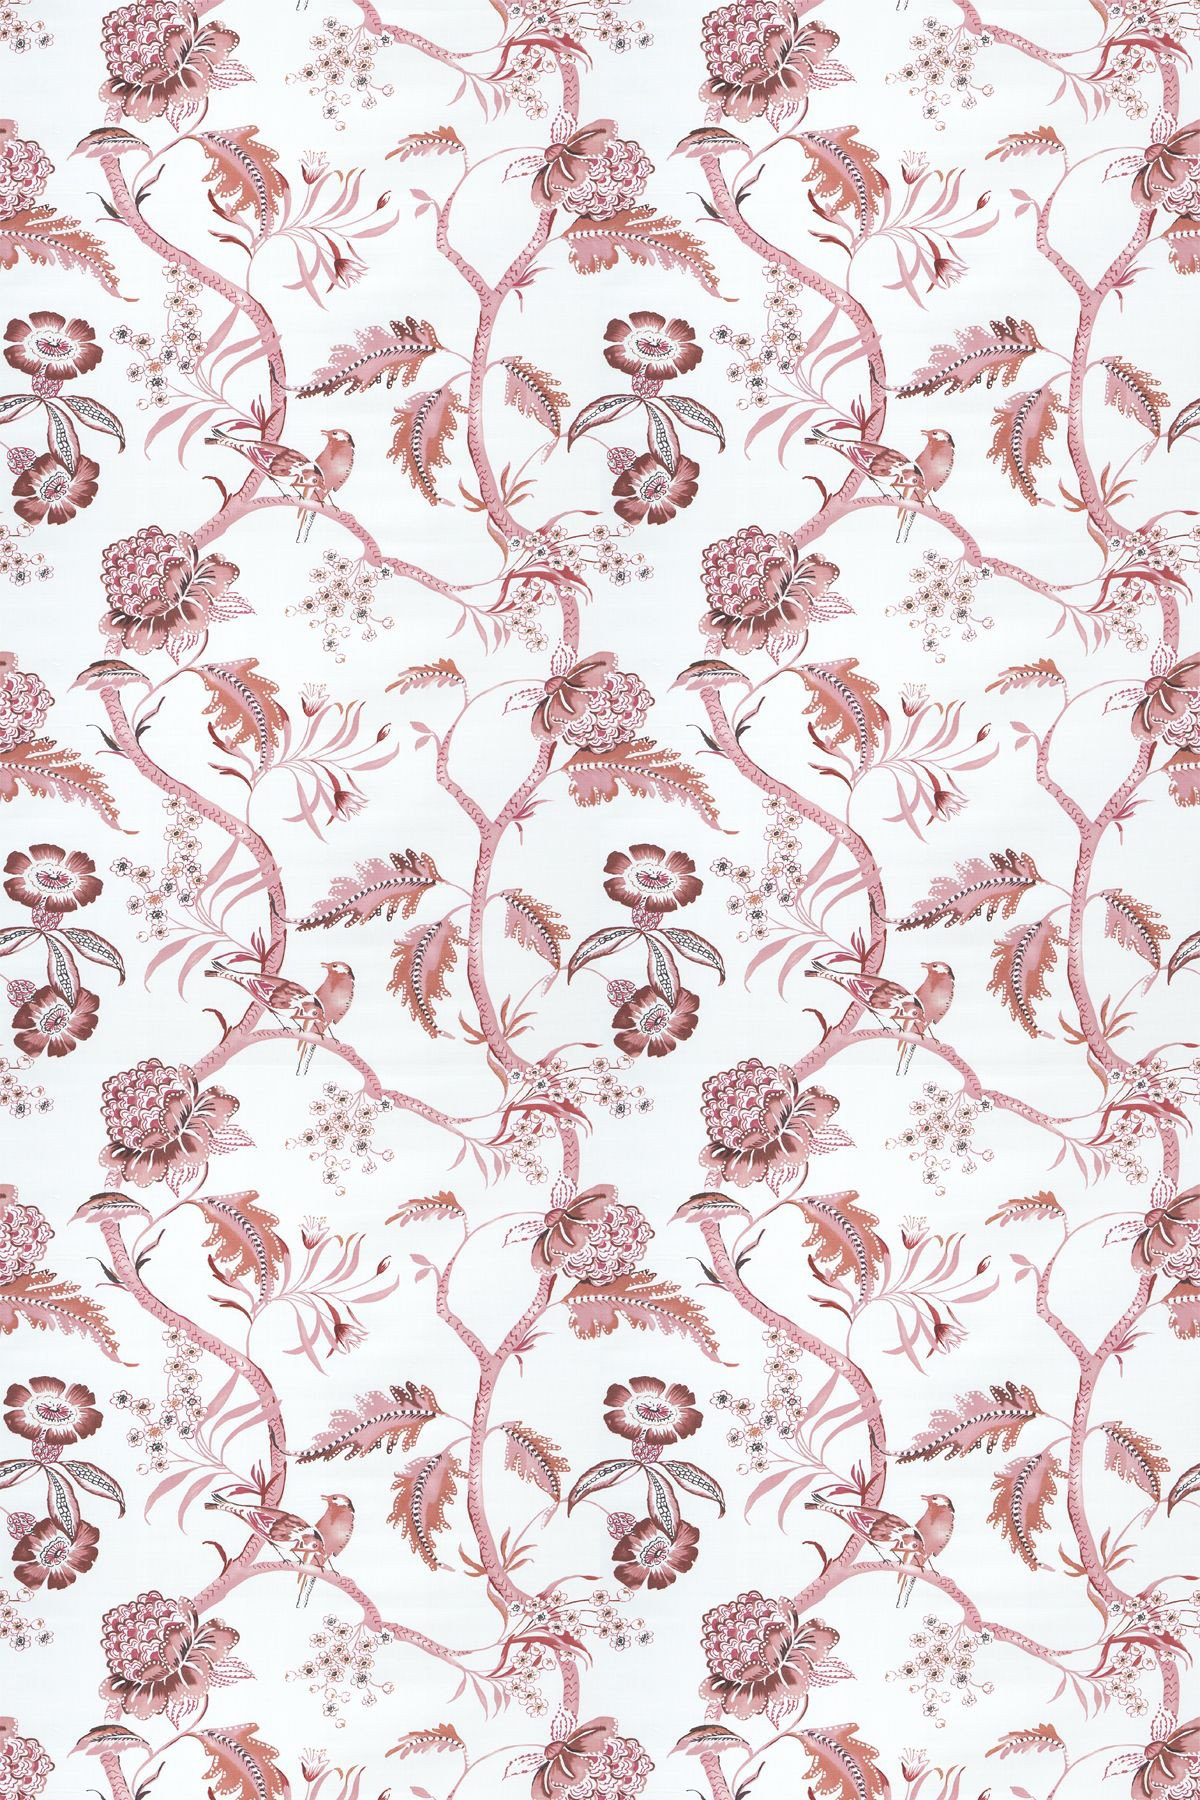 Image of Blendworth Fabric Birdsong, Birdsong/002